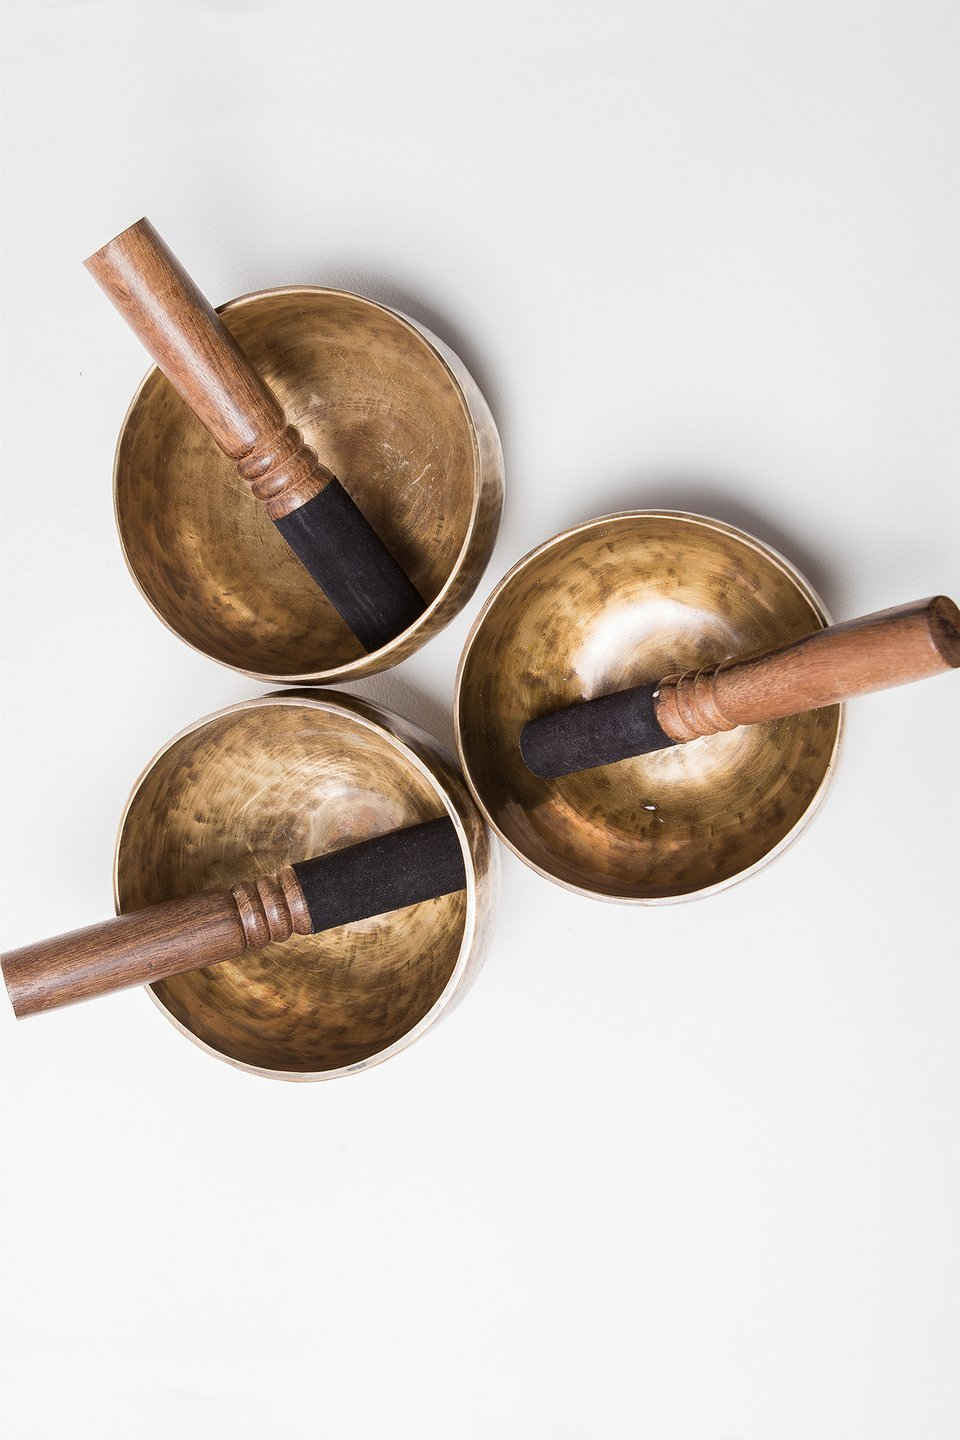 Singing Bowl 7.5 with Suede Mallet and Striker